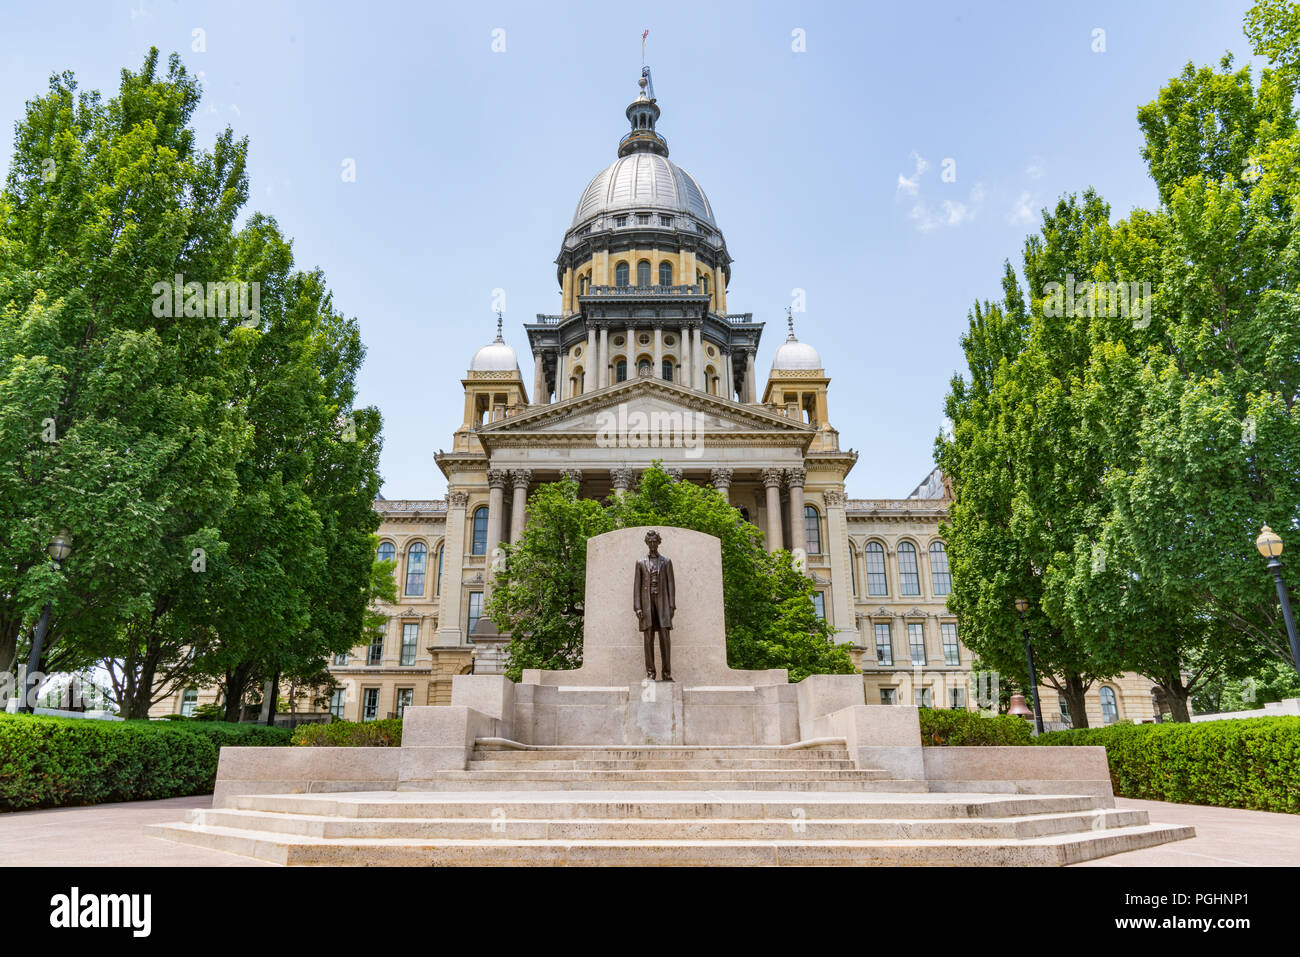 Abraham Lincoln statue in front of the Illinois State Capital Building in Springfield, Illinois Stock Photo